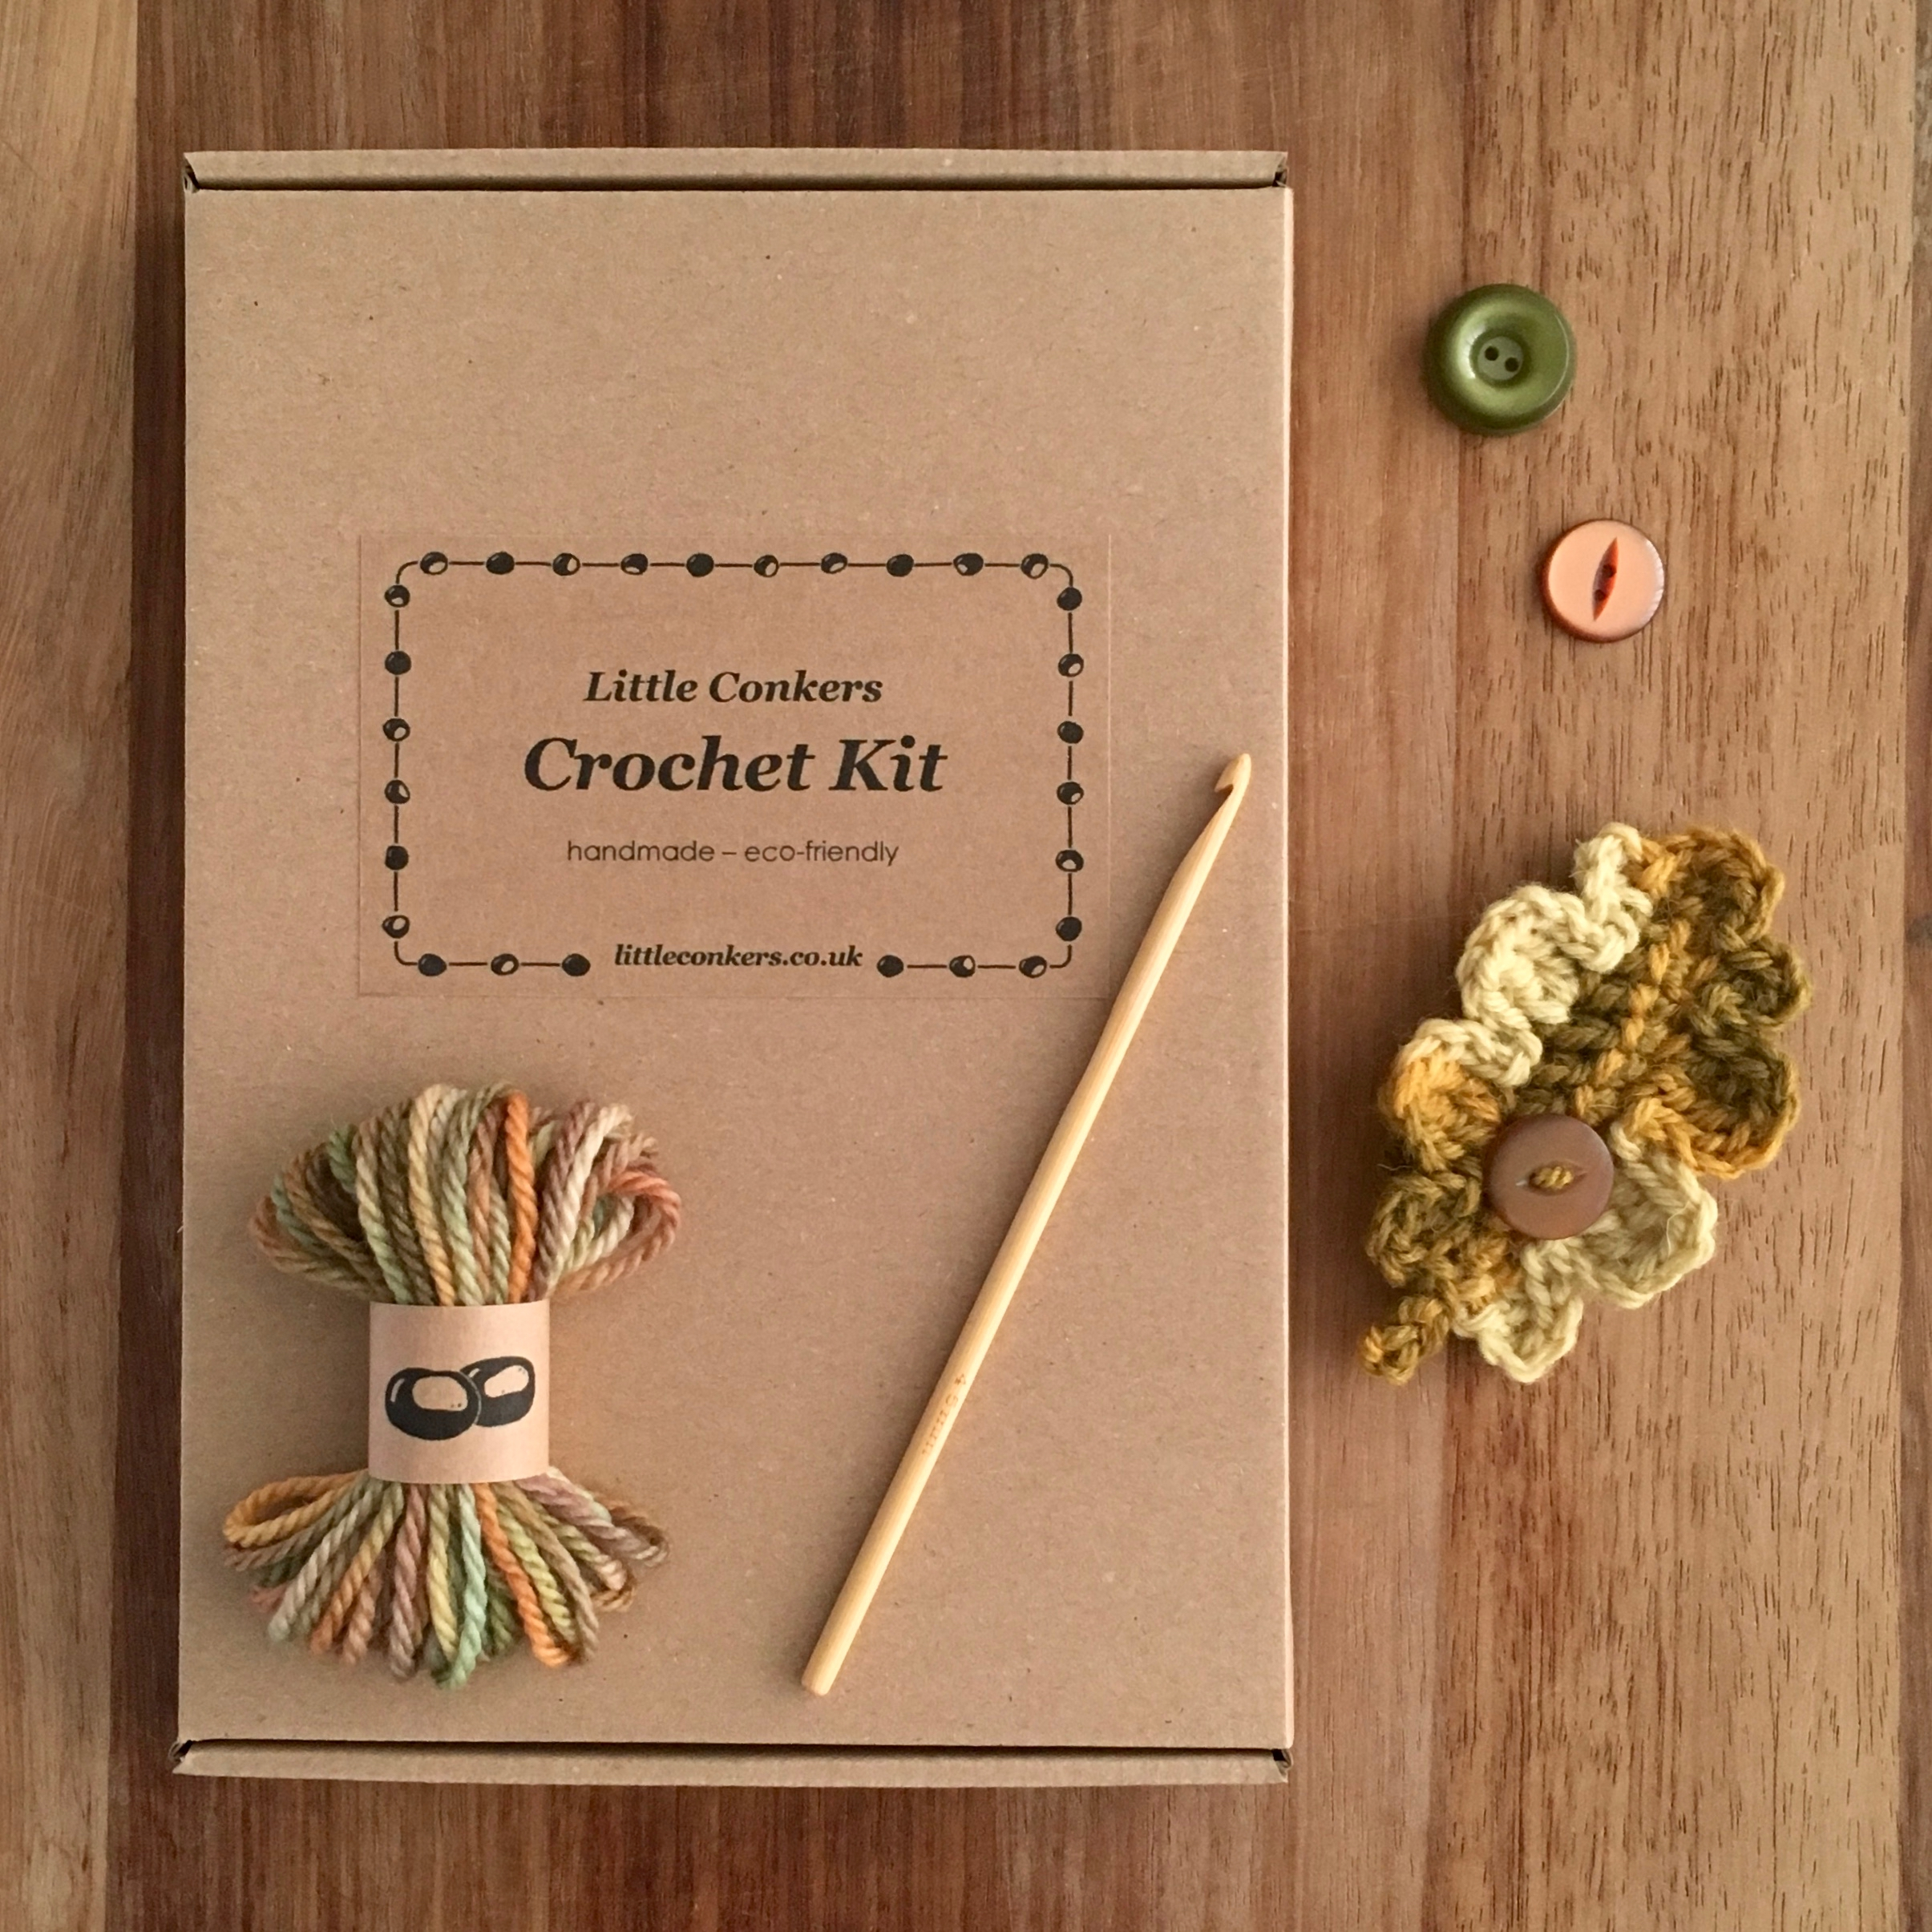 Eco-friendly crochet kit for a woollen oak leaf brooch with vintage buttons